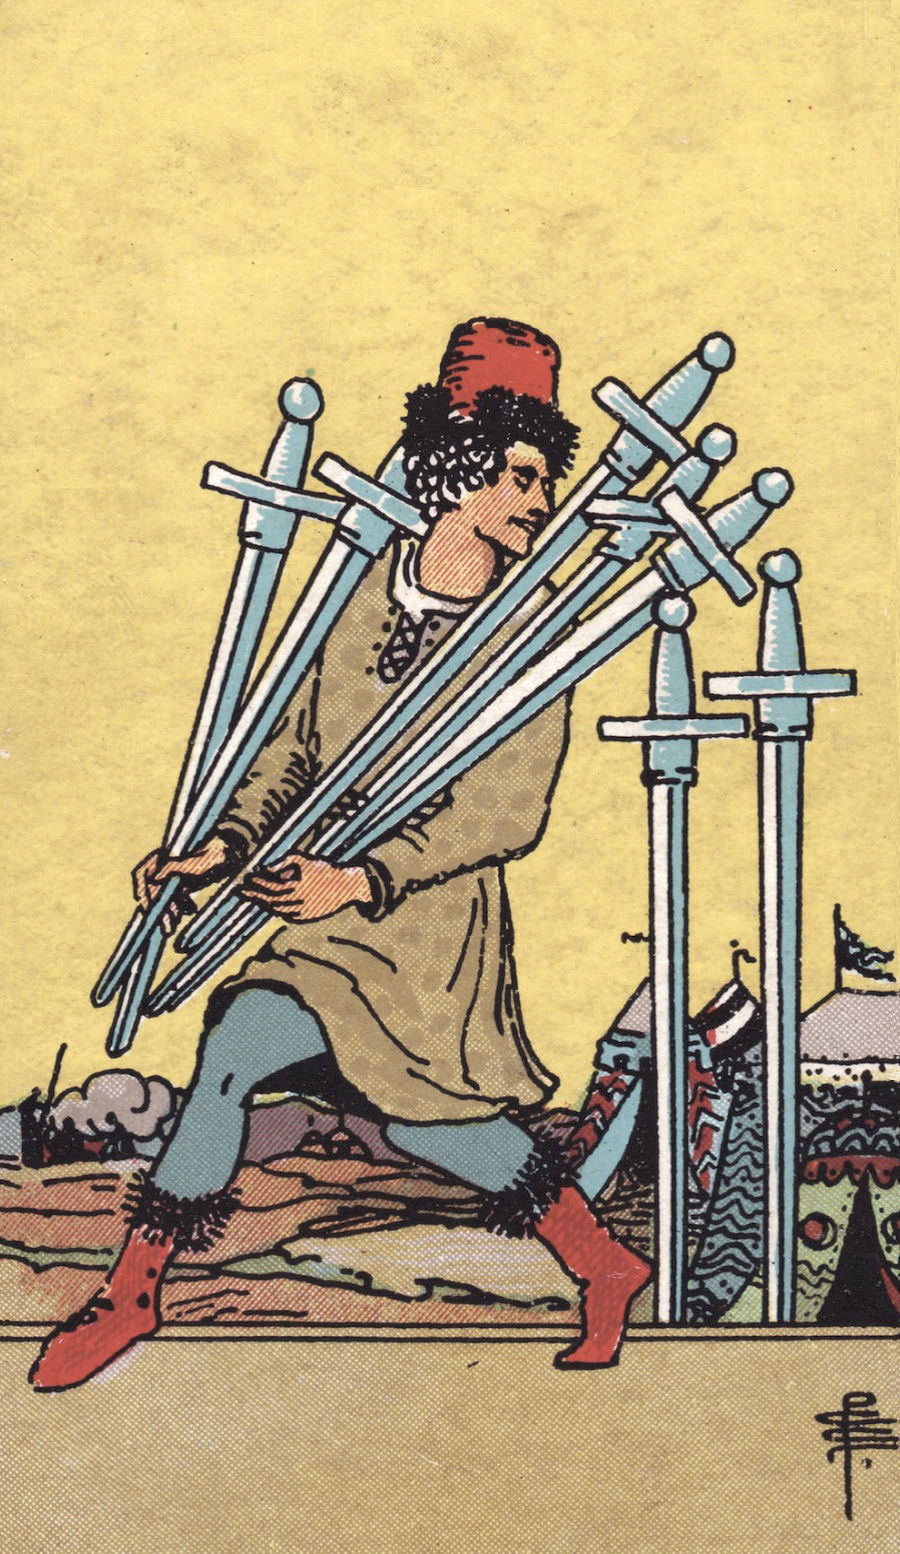 The Seven of Swords - This card is more than a little naughty. Jauntily sneaking off with more swords than you can carry reflects the thrill of having a secret - a hidden kink, new relationship, or even affair. Be sure to stop and consider if this secret is benign or whether it's hurtful to others. Sometimes the temporary pleasure isn't worth it.